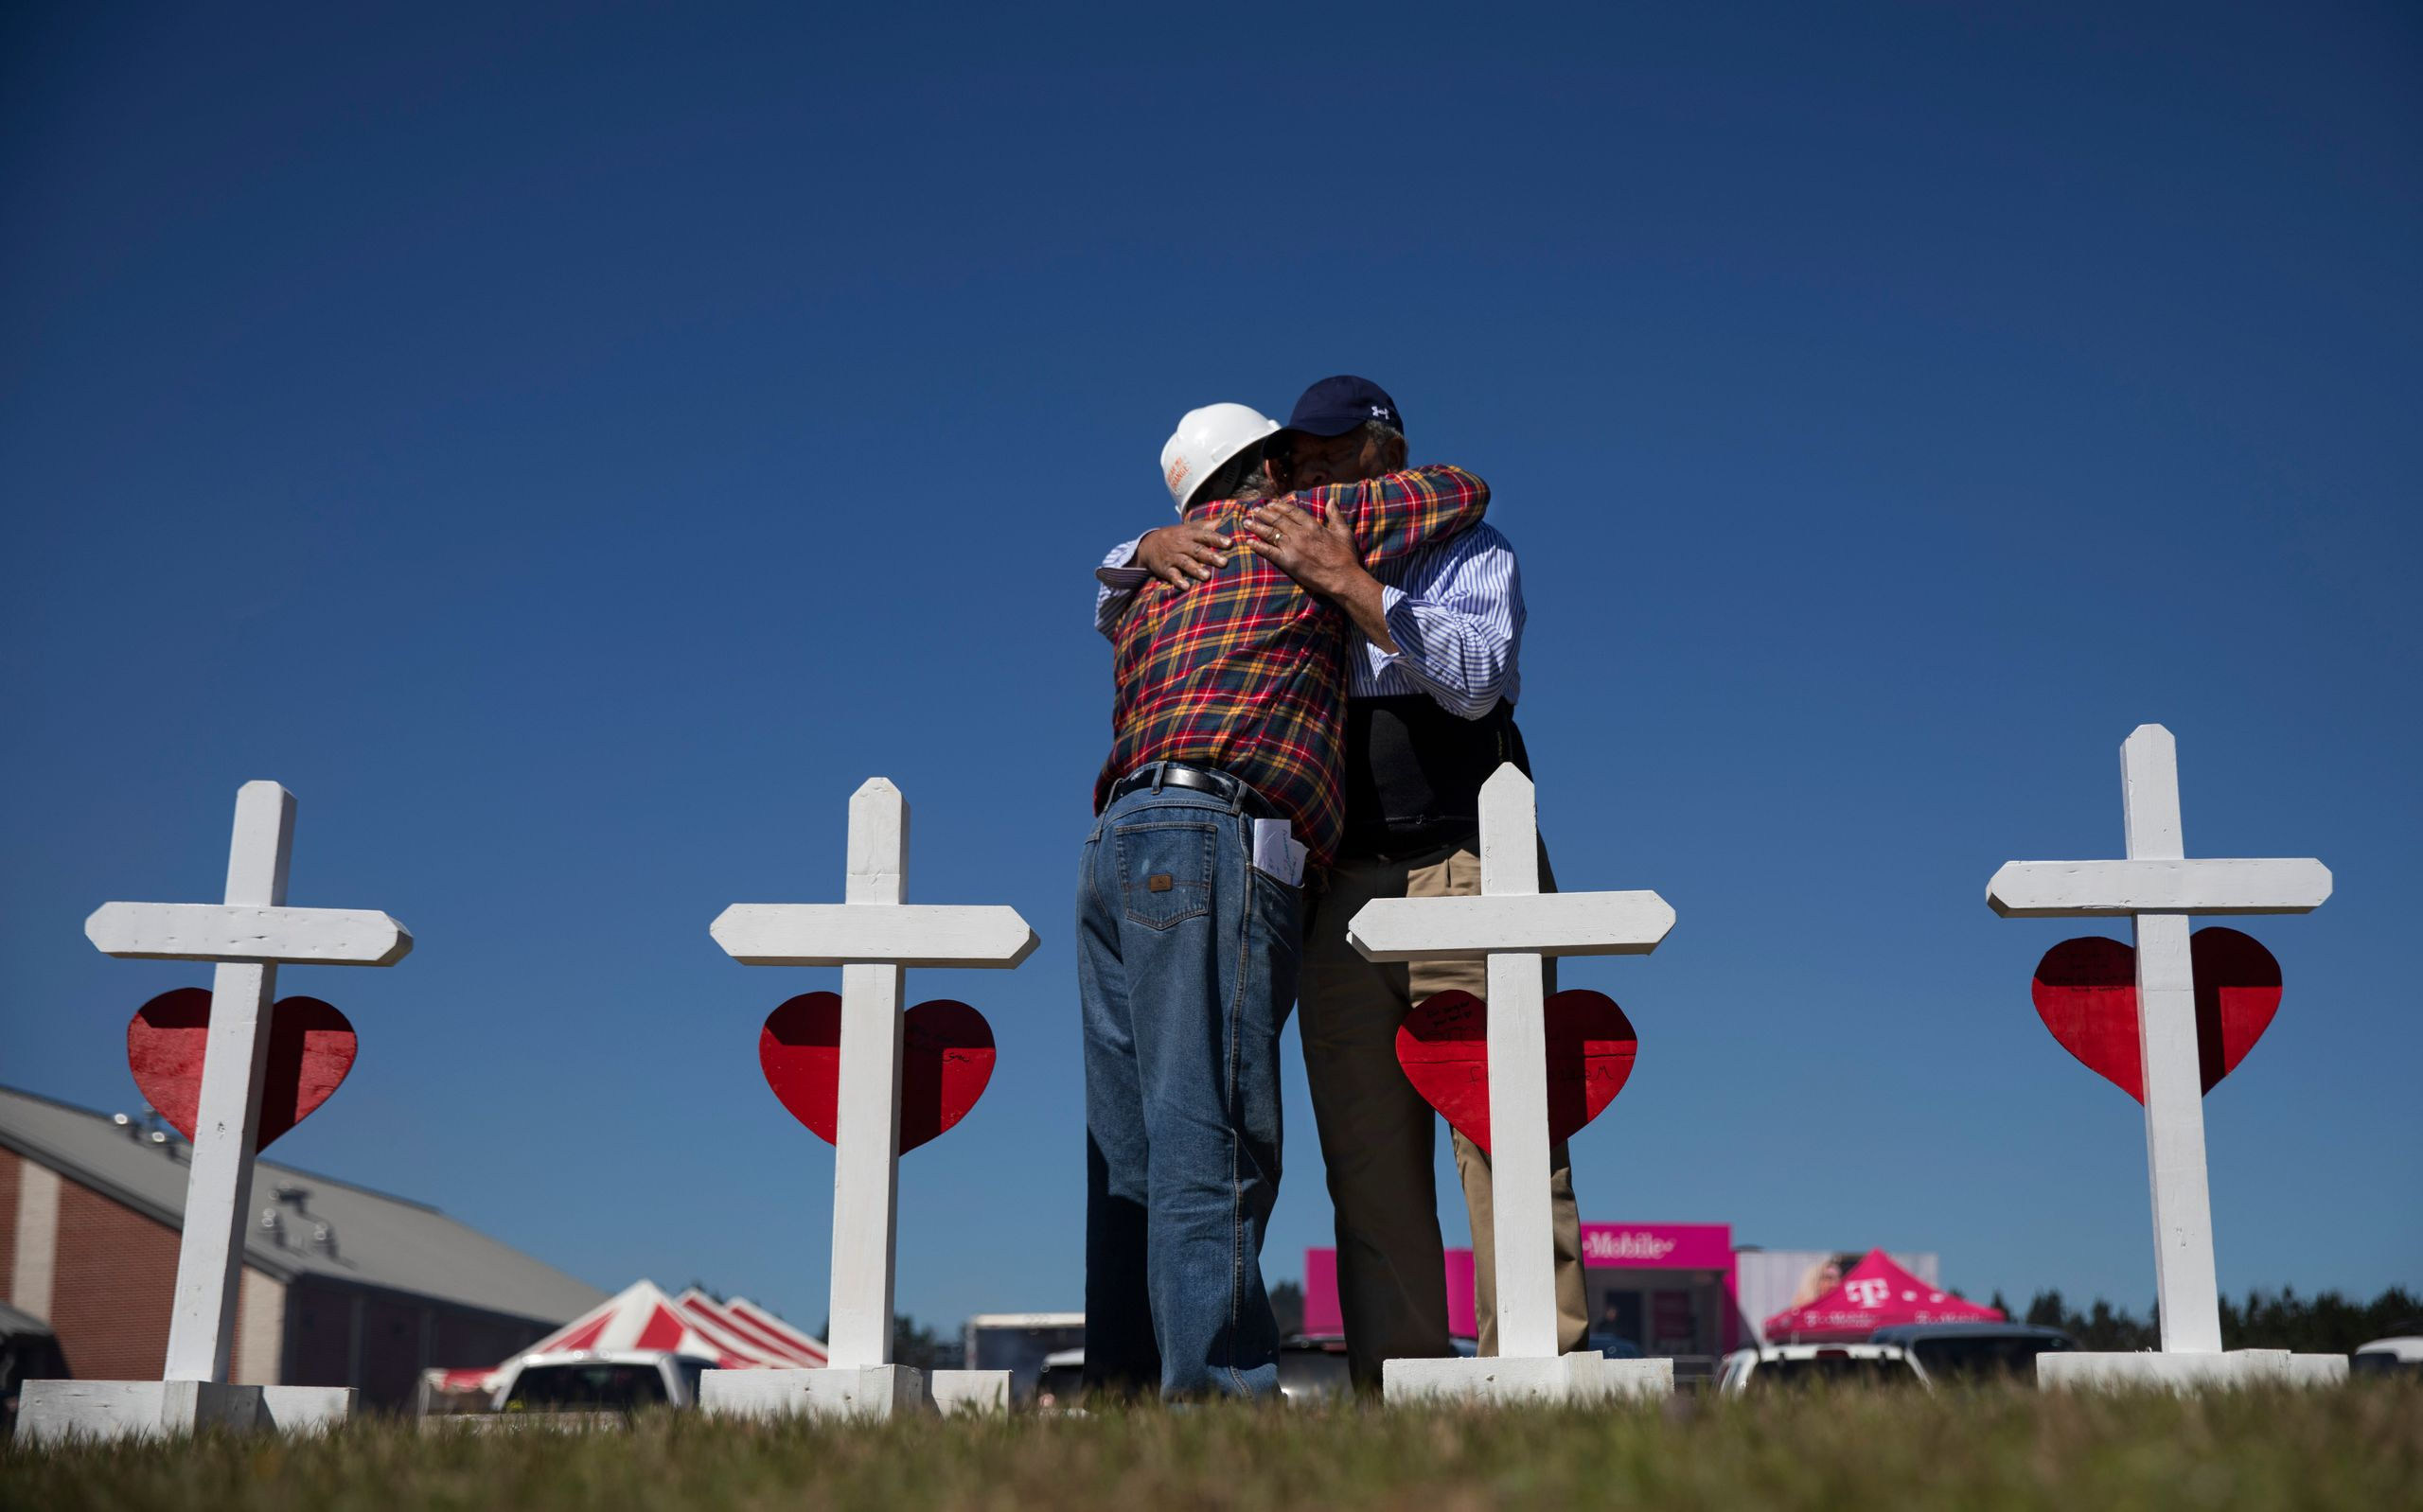 Rev. Arthur Thomas, right, of Mt. Nebo Baptist Church, is embraced by Greg Zanis, who built a cross for each victim of the to